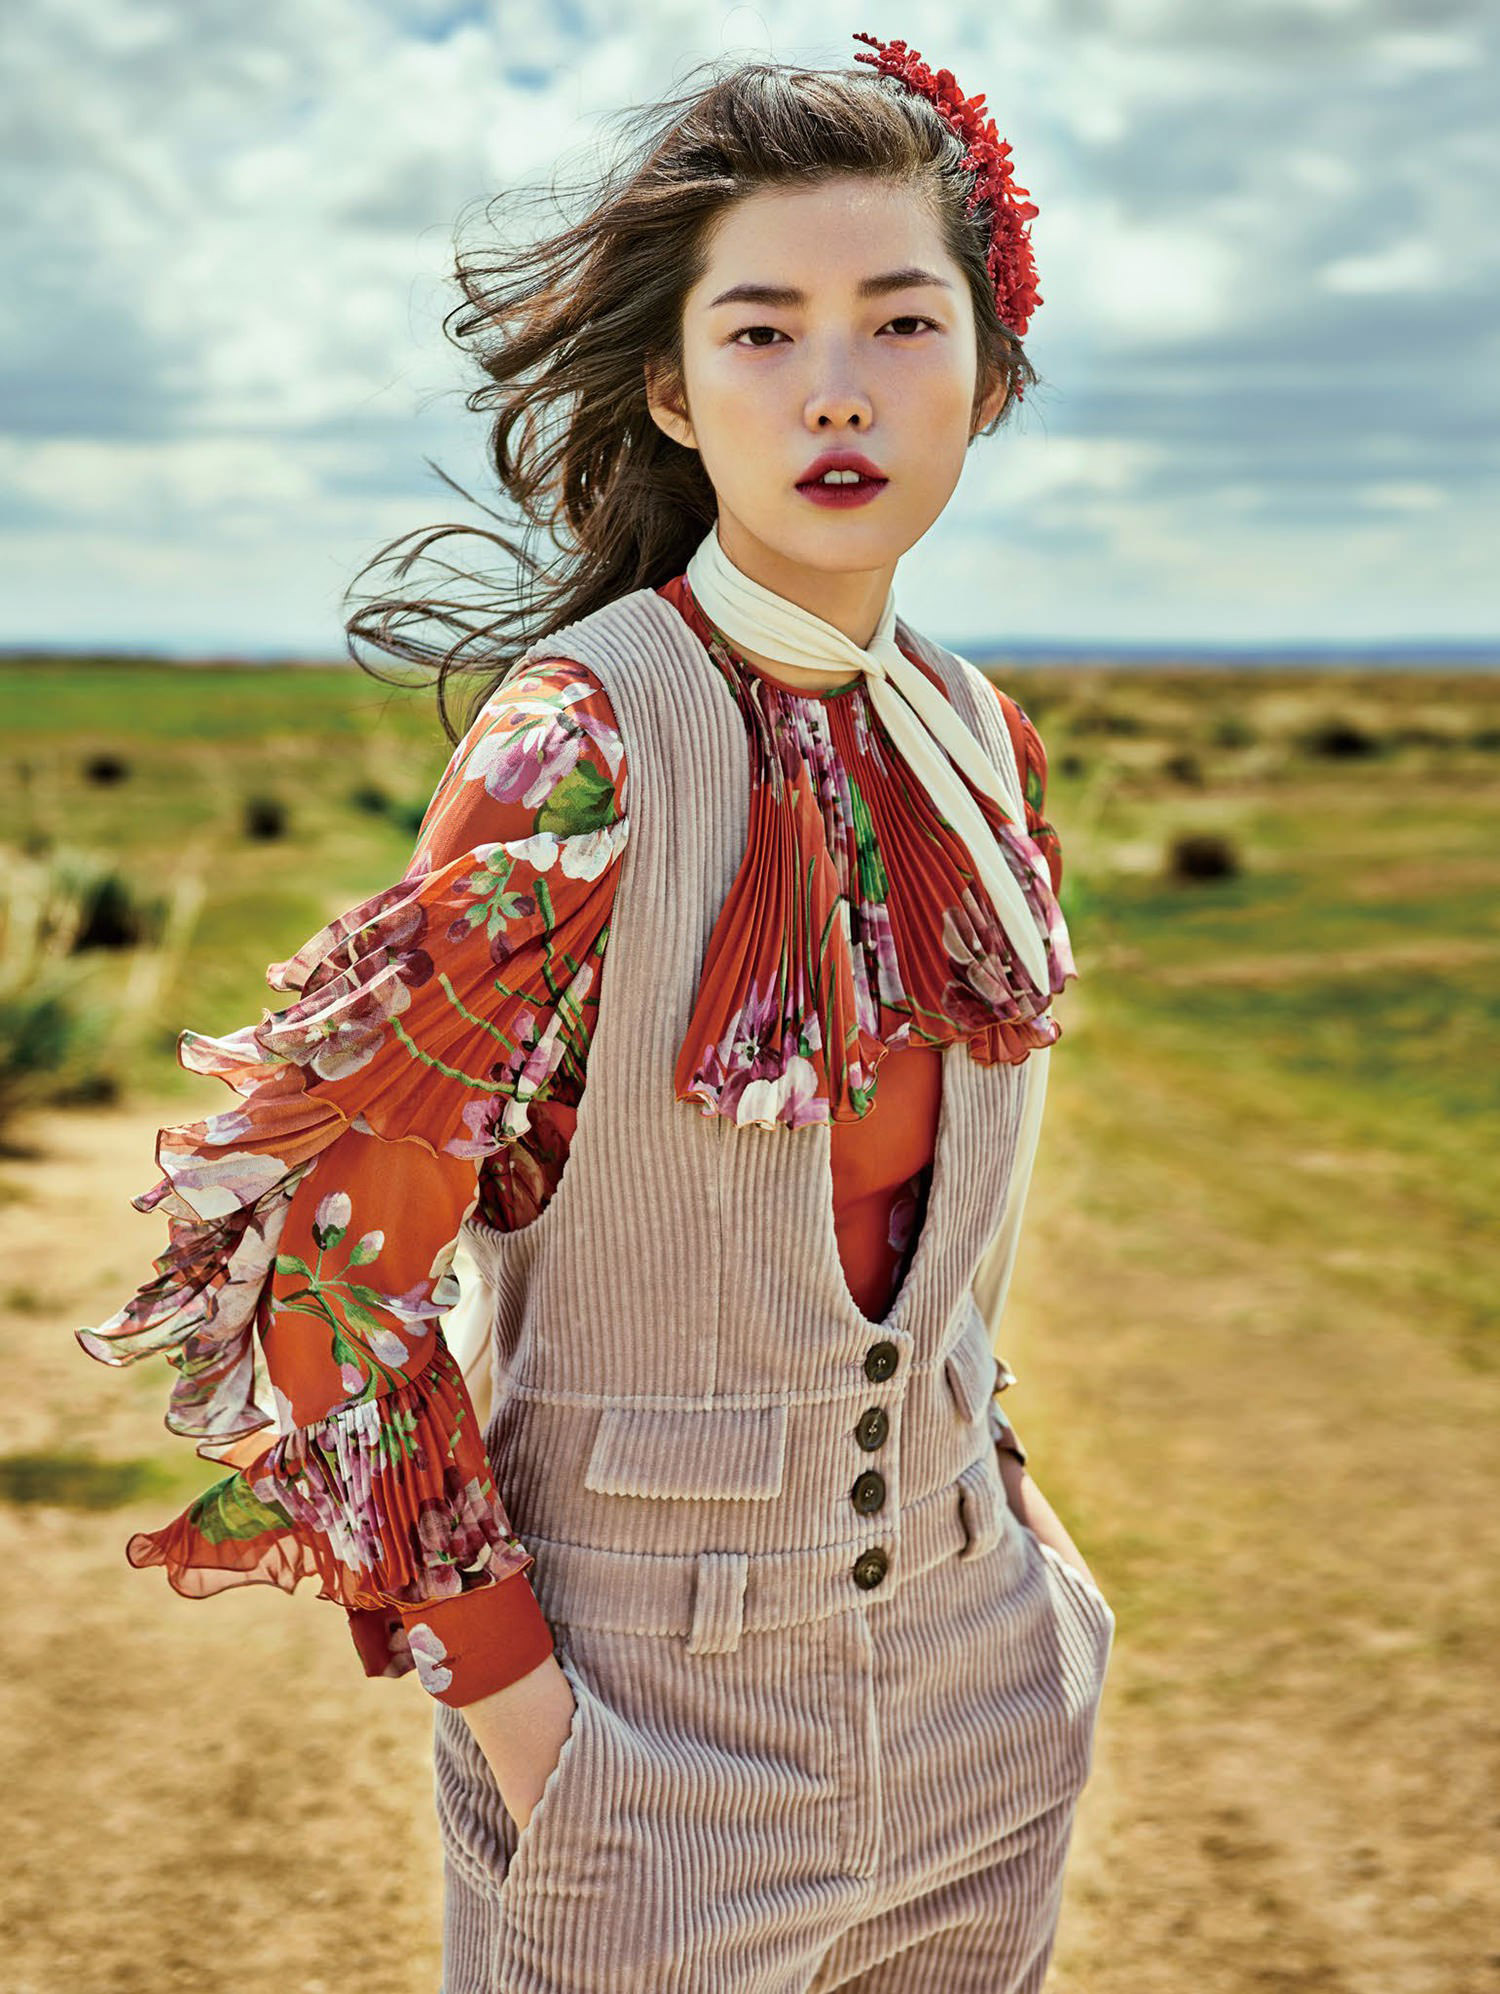 jessie-hsu-by-yin-chao-for-vogue-china-august-2015-6